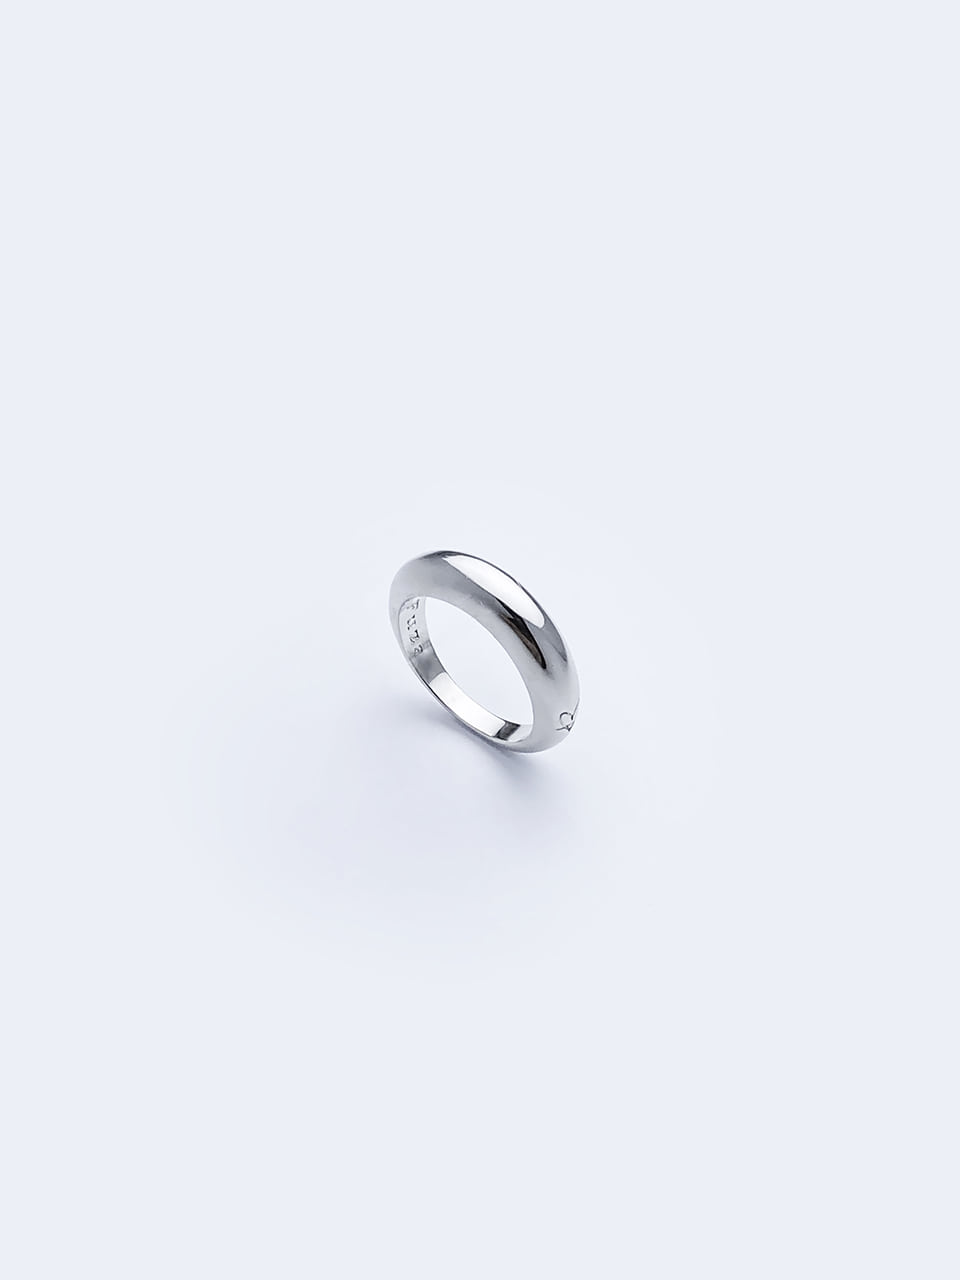 DOME RING (5mm) 돔 반지 5mm